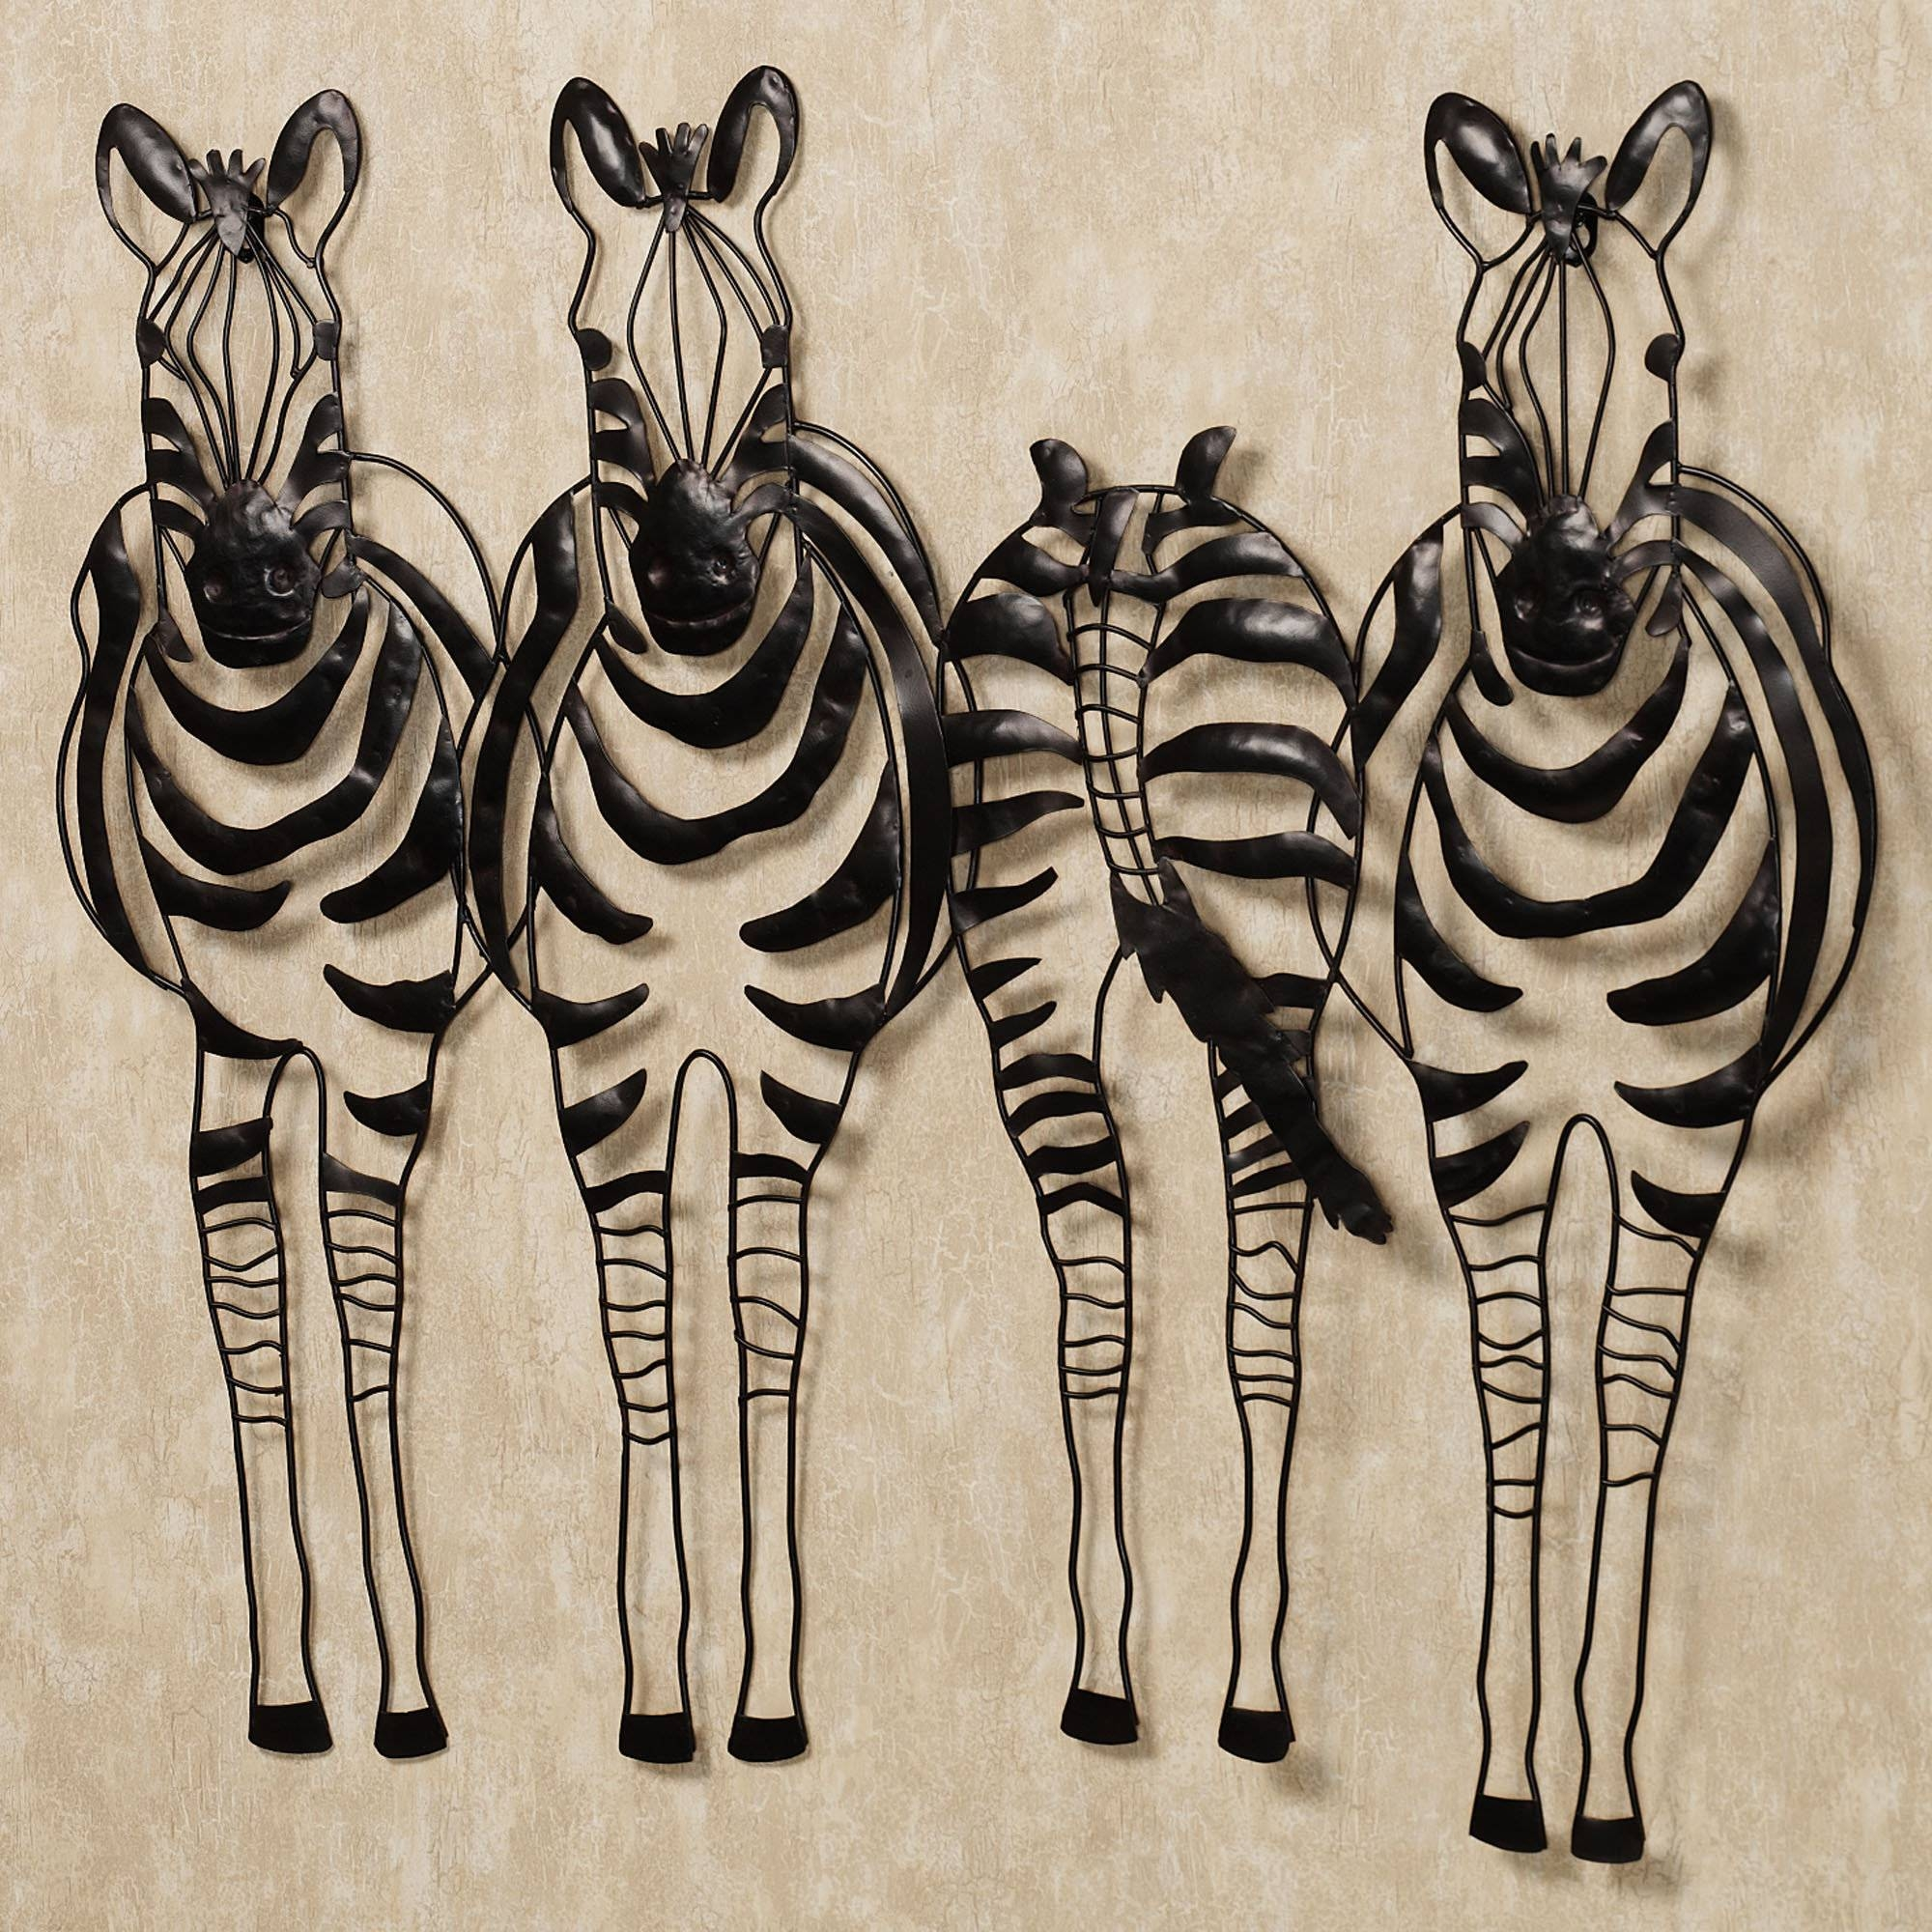 Awesome Zebra Home Decor Metal Wall Sculptures~ Popular Home Intended For Latest Metal Wall Art Decor And Sculptures (View 4 of 20)